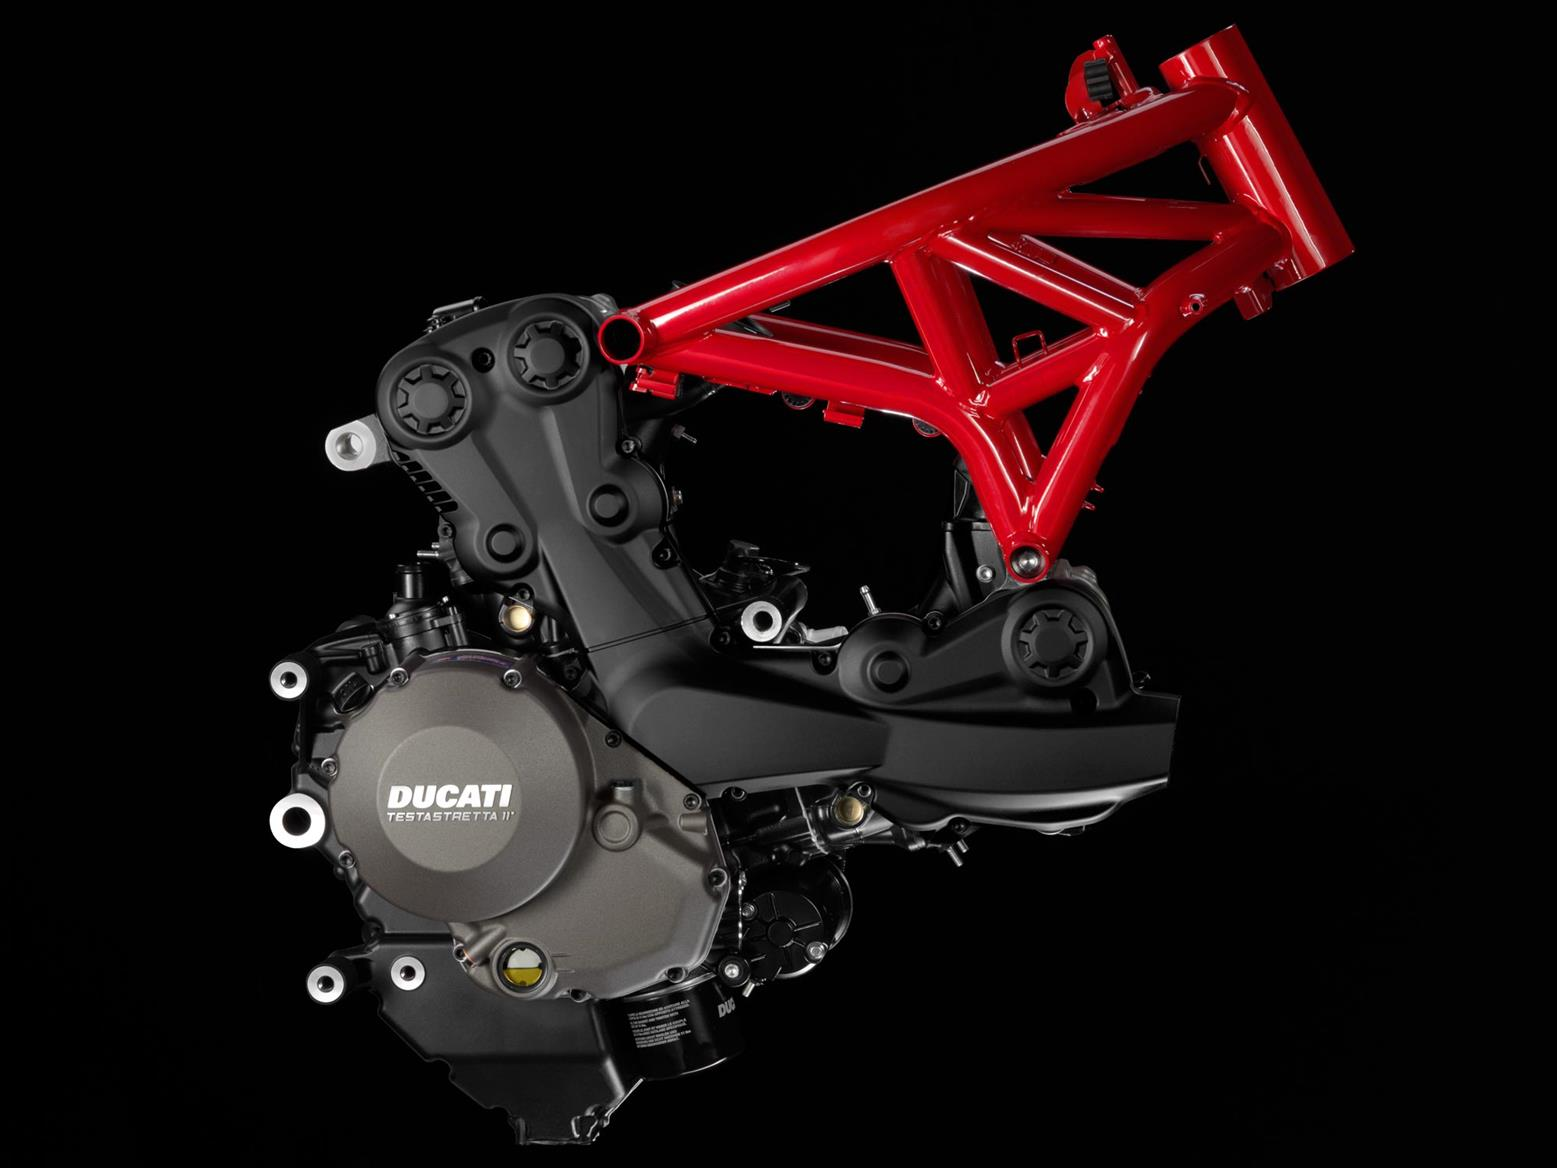 Ducati Monster 1200 trellis frame and engine